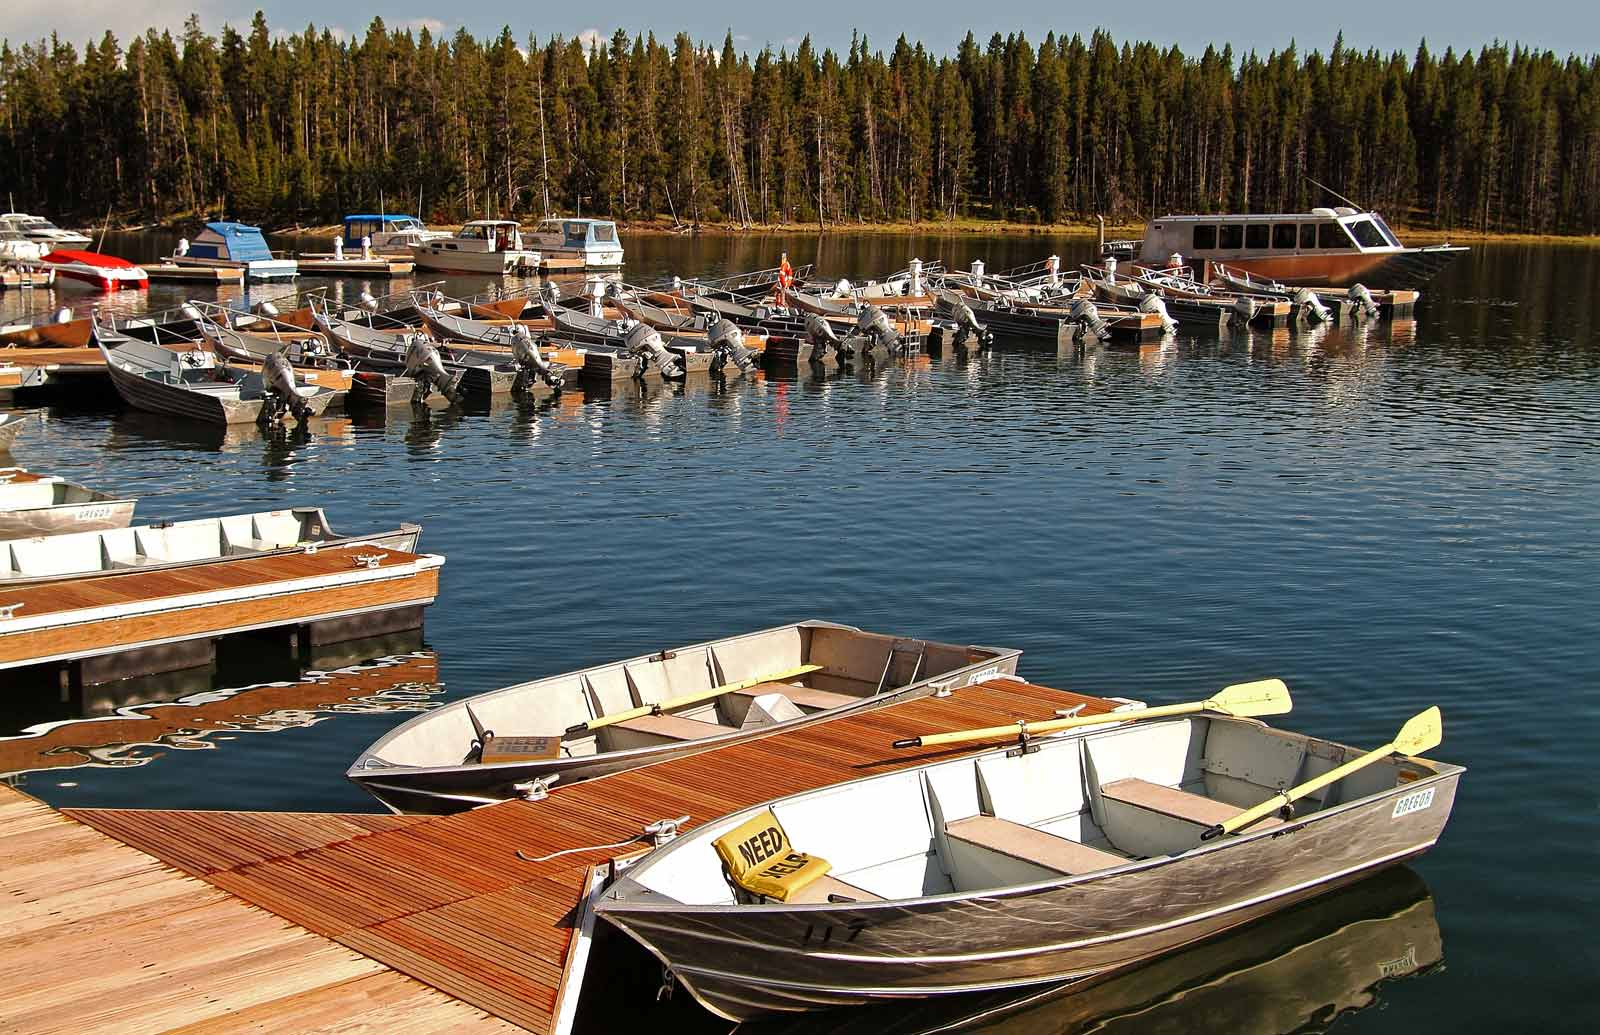 Fleet of boats tied up in a marina